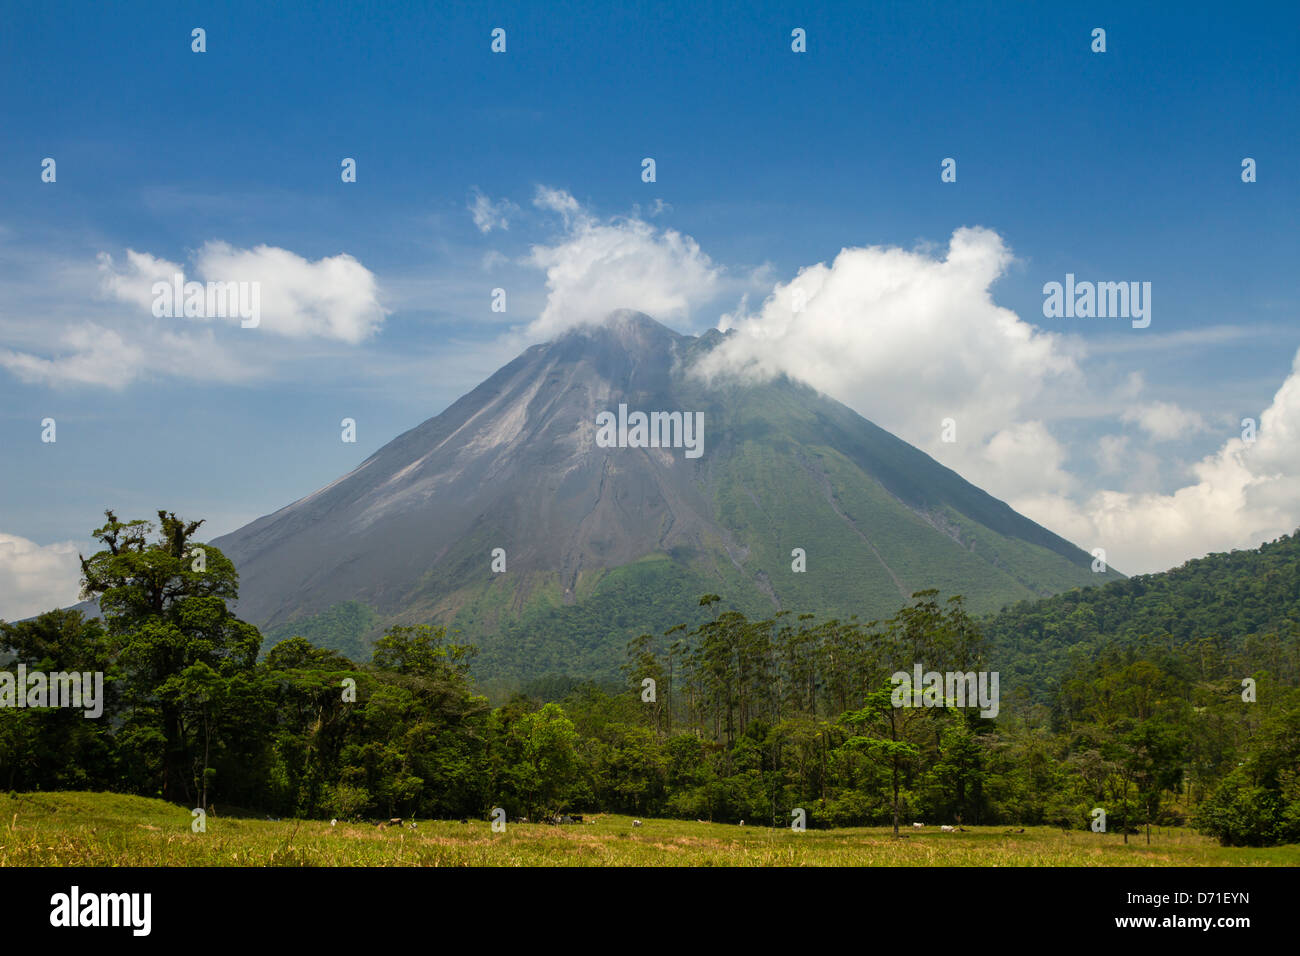 Arenal Volcano, Arenal Volcano National Park, Costa Rica - Stock Image